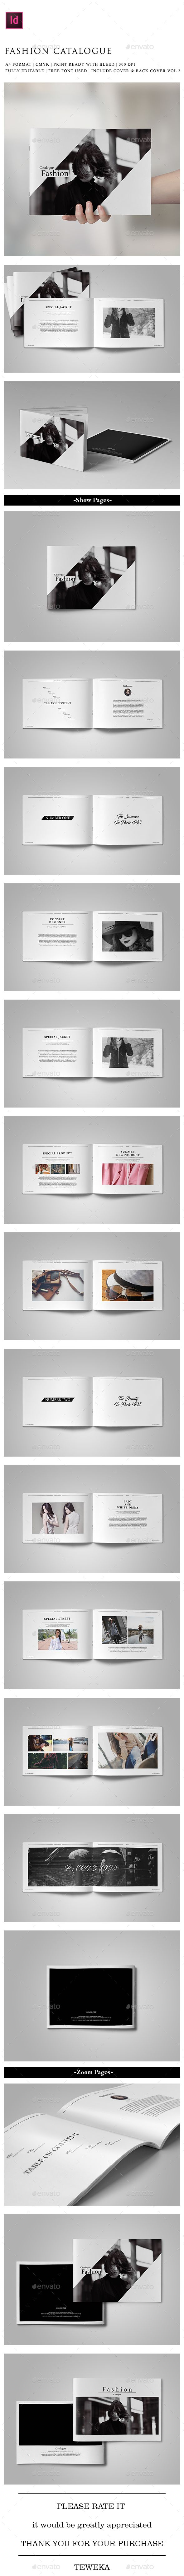 199 best Magazine Book Design Layout images on Pinterest | Book ...